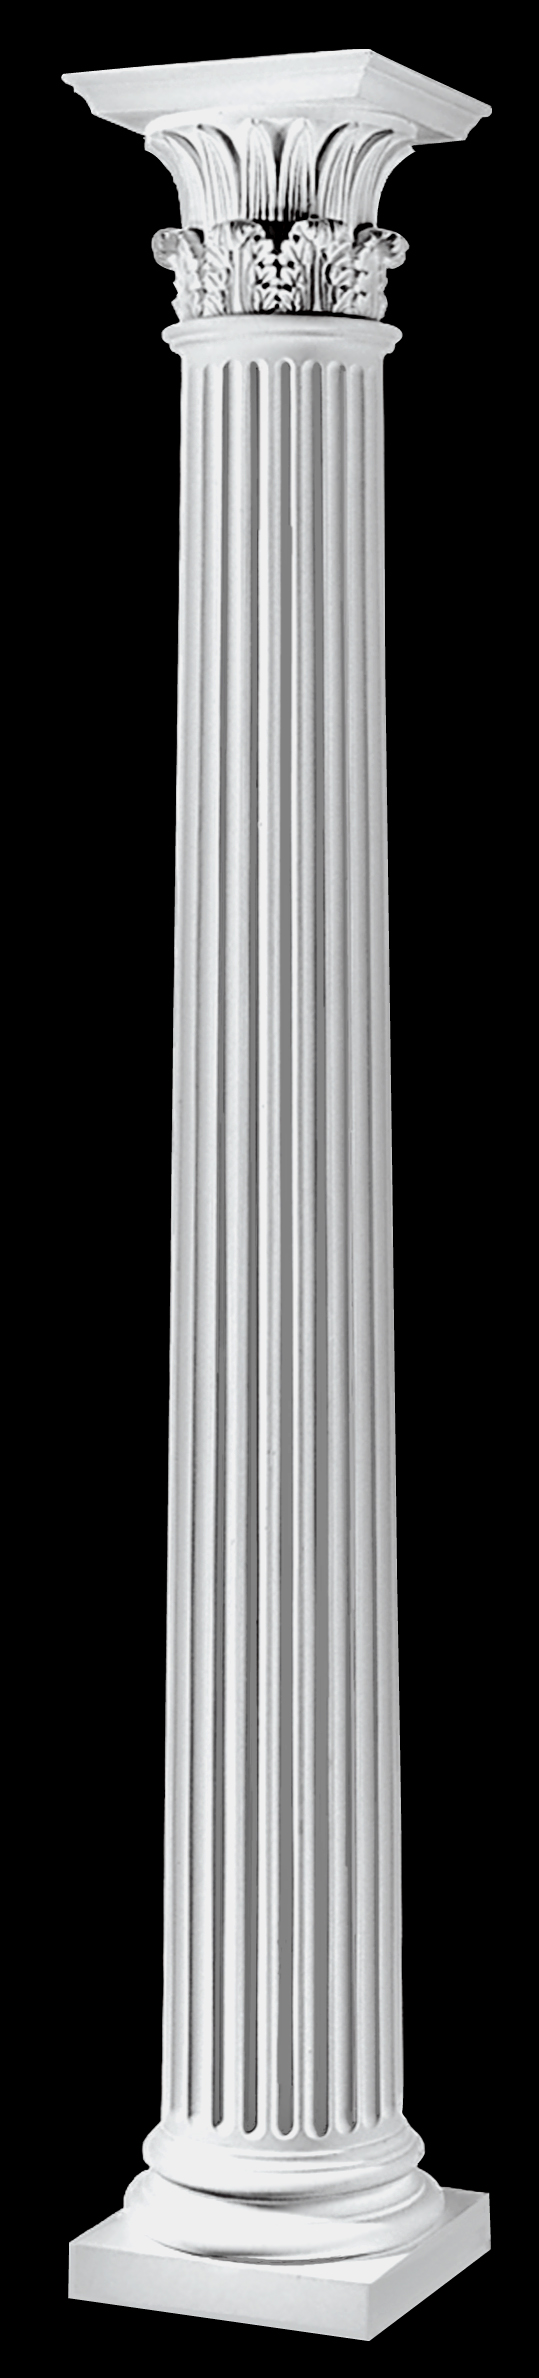 fluted architectural wood greek corinthian columns